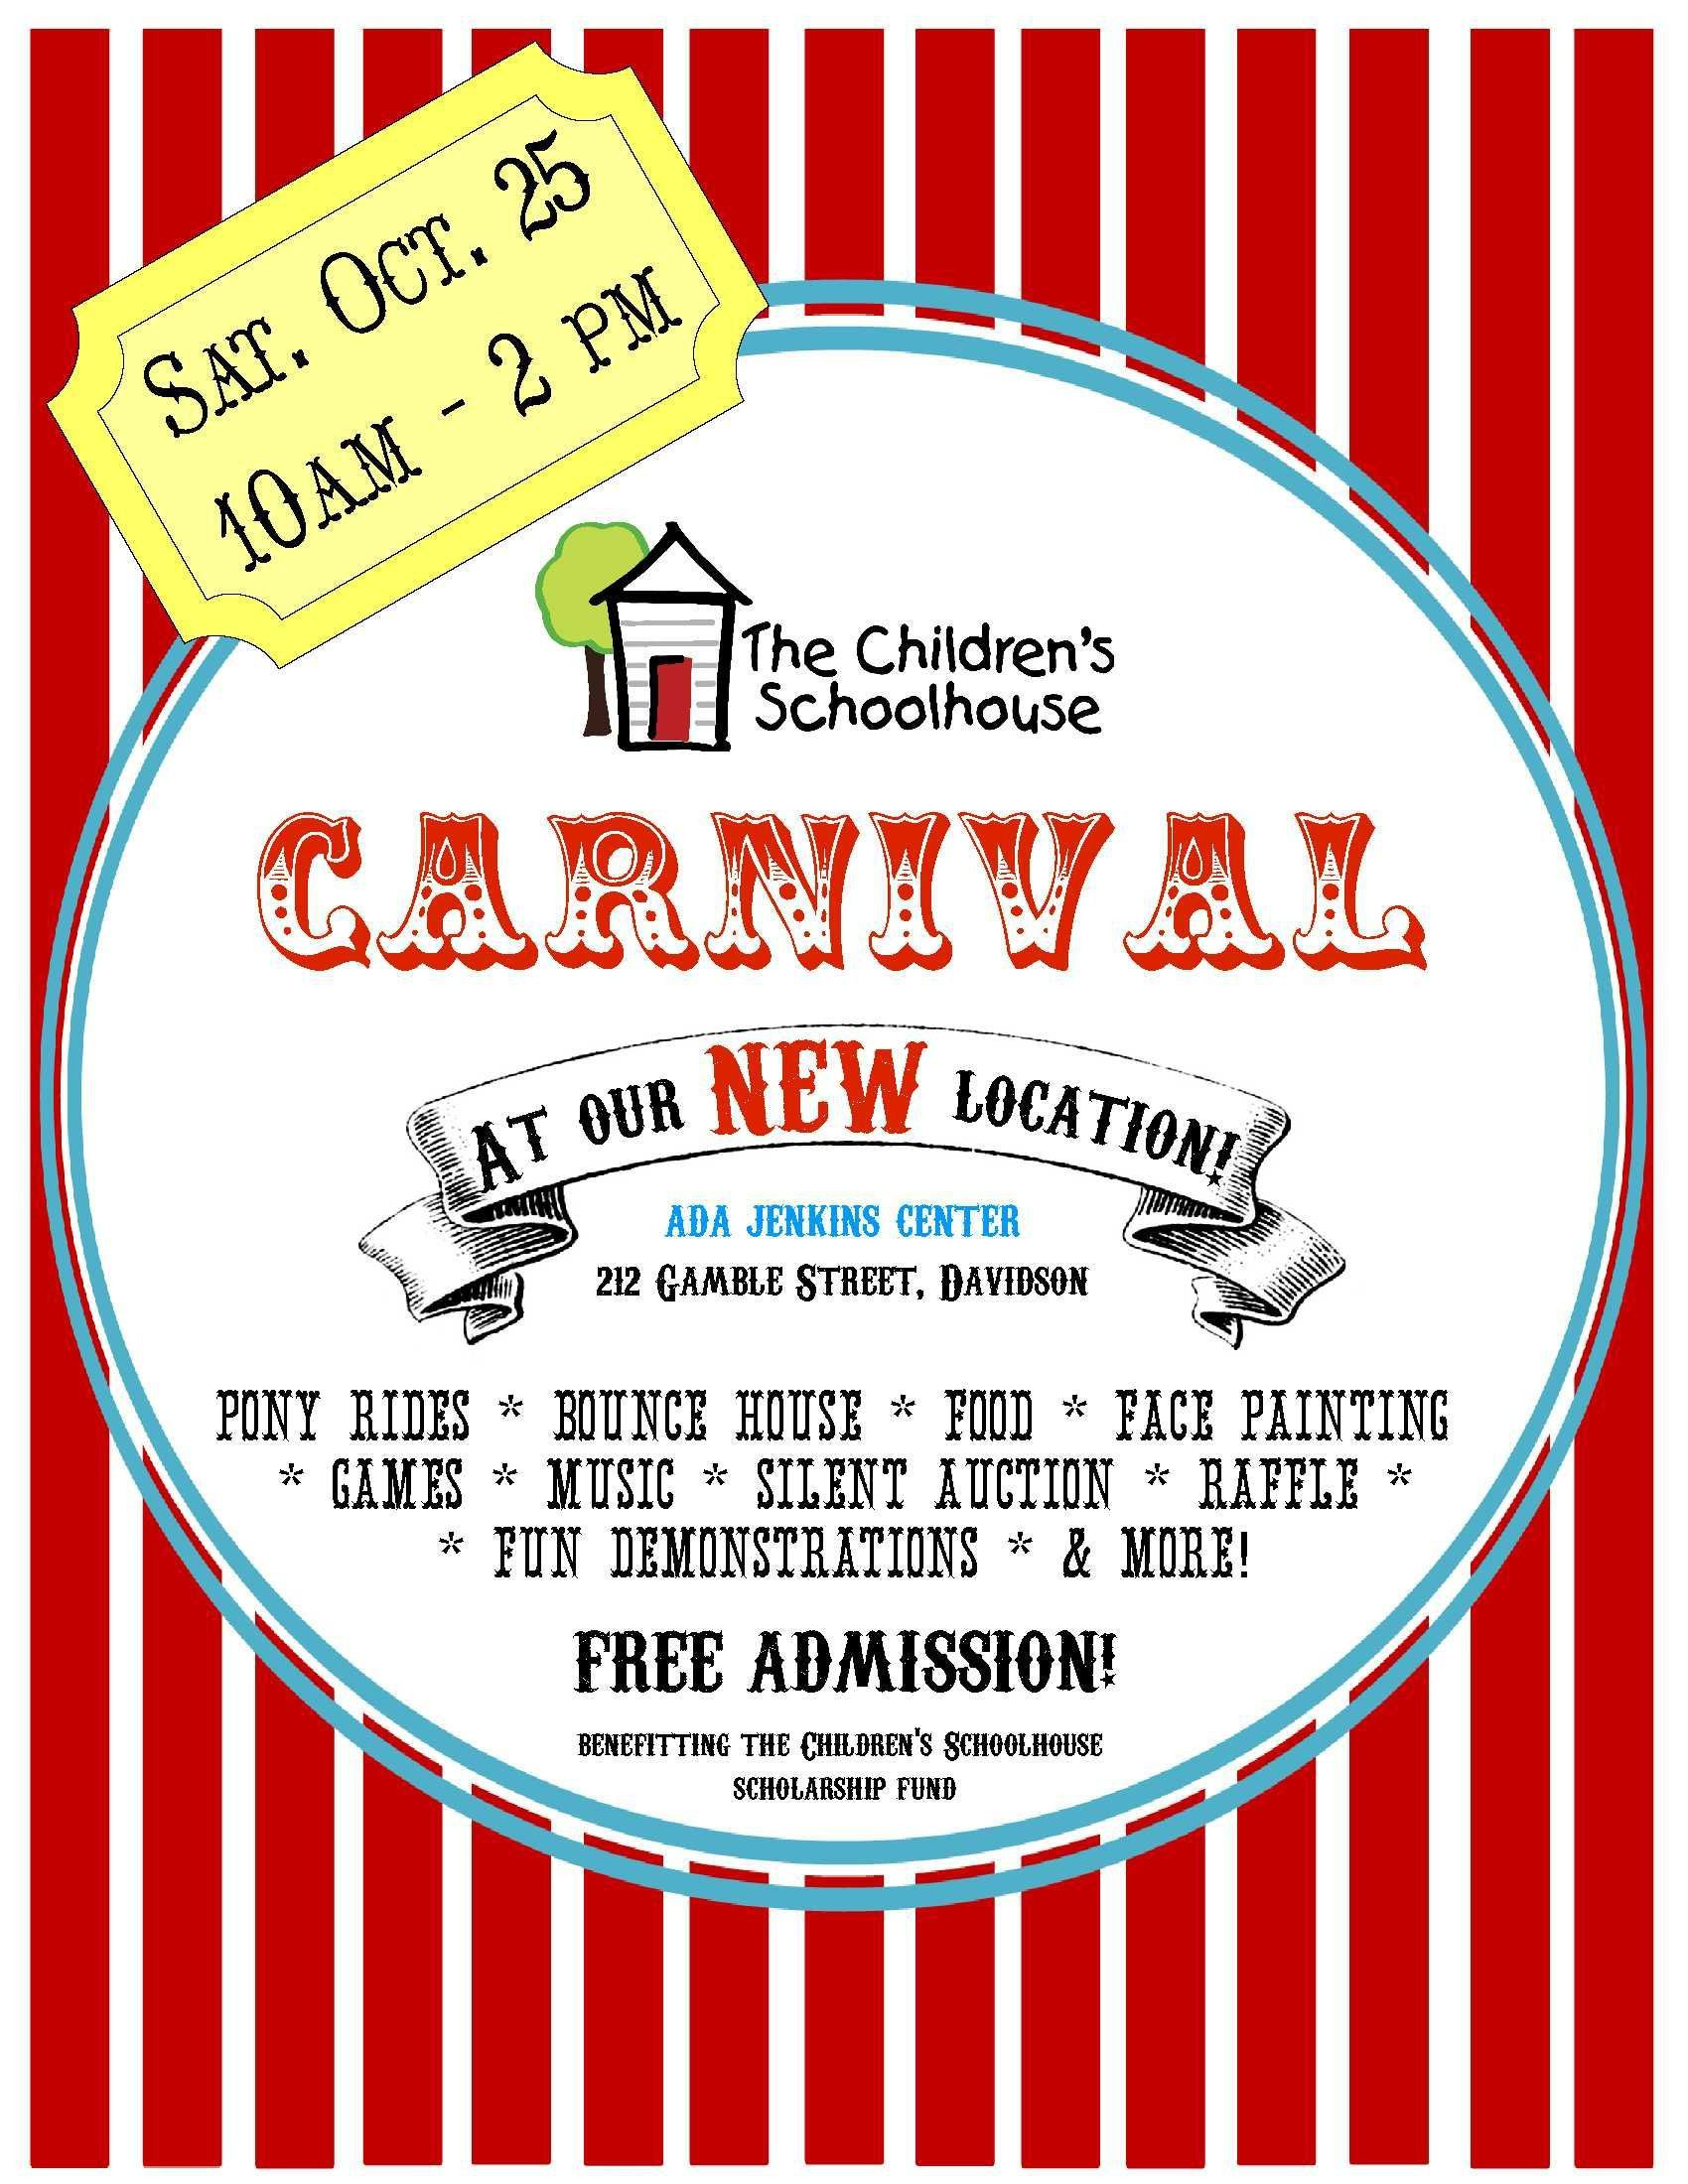 006 Stunning Free School Carnival Flyer Template Example  Templates DownloadFull